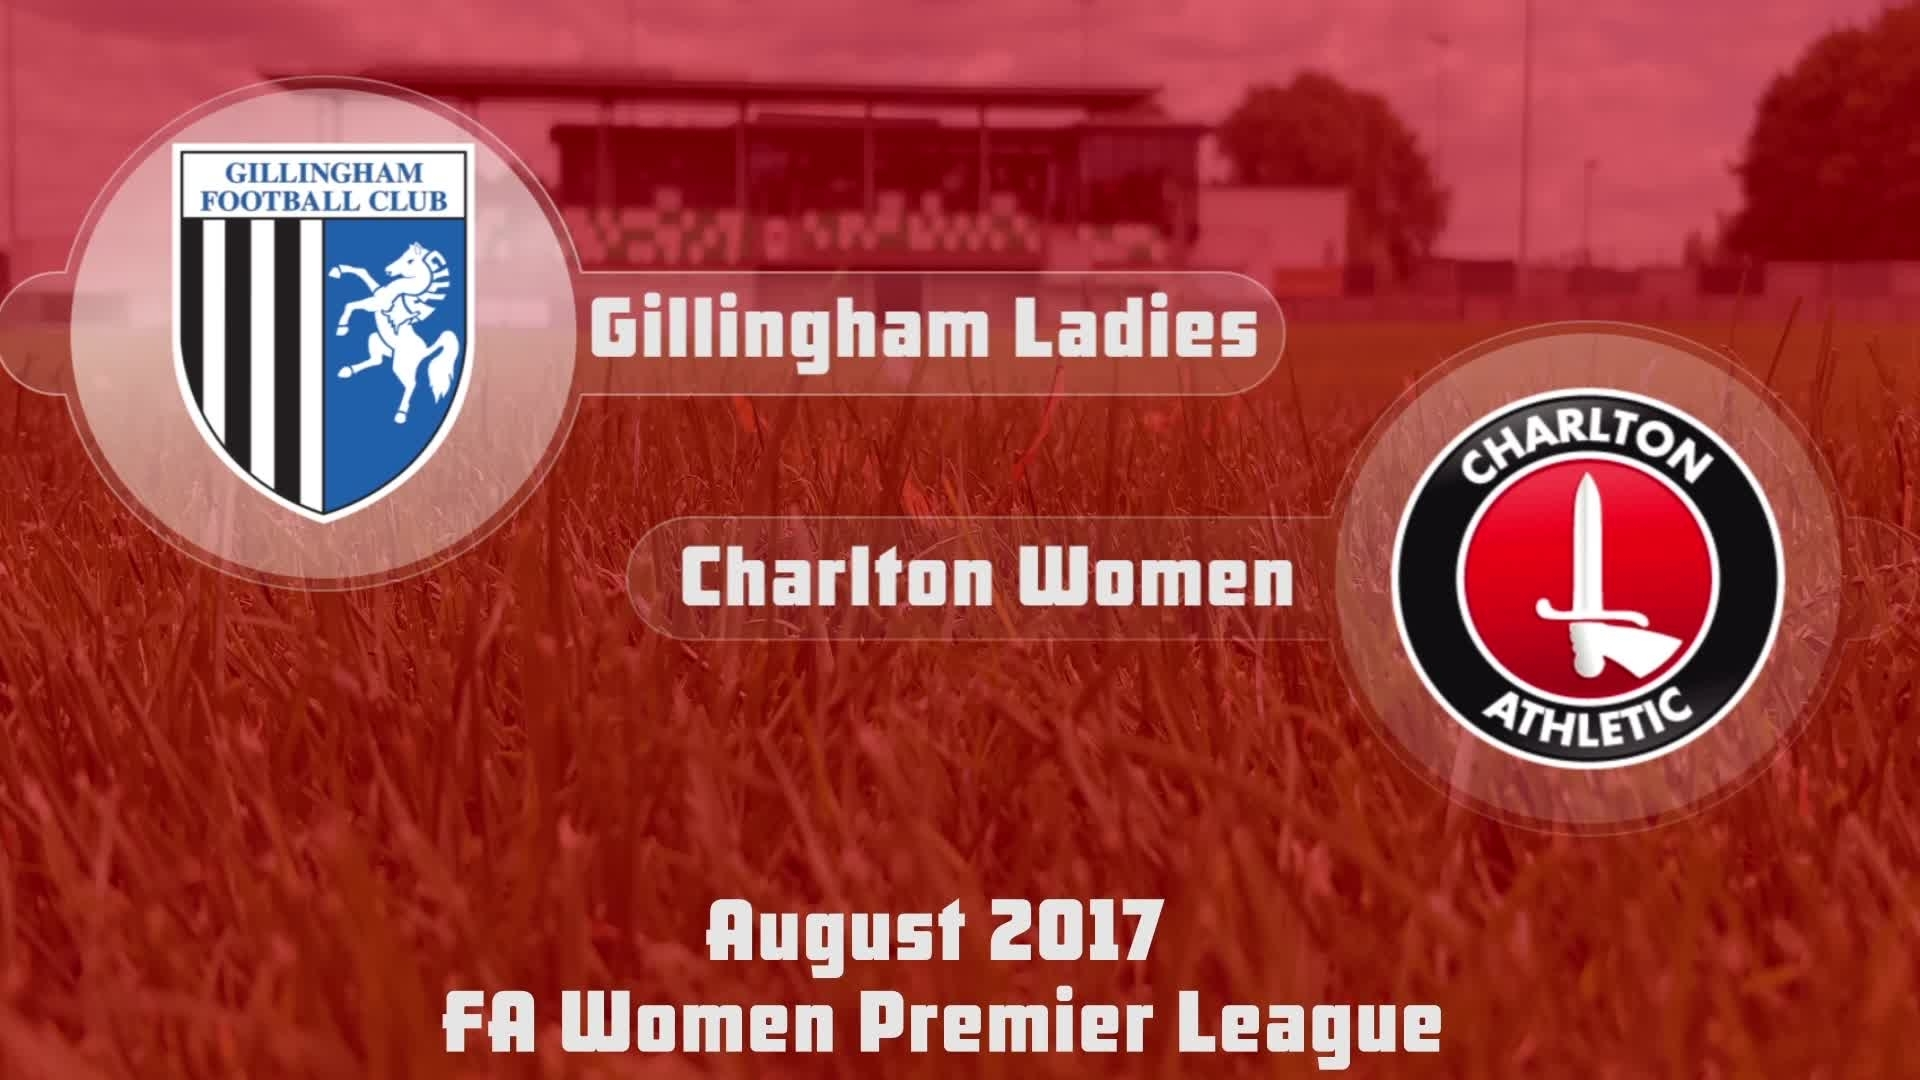 WOMEN'S HIGHLIGHTS | Gillingham 1 Charlton 2 (Aug 2017)